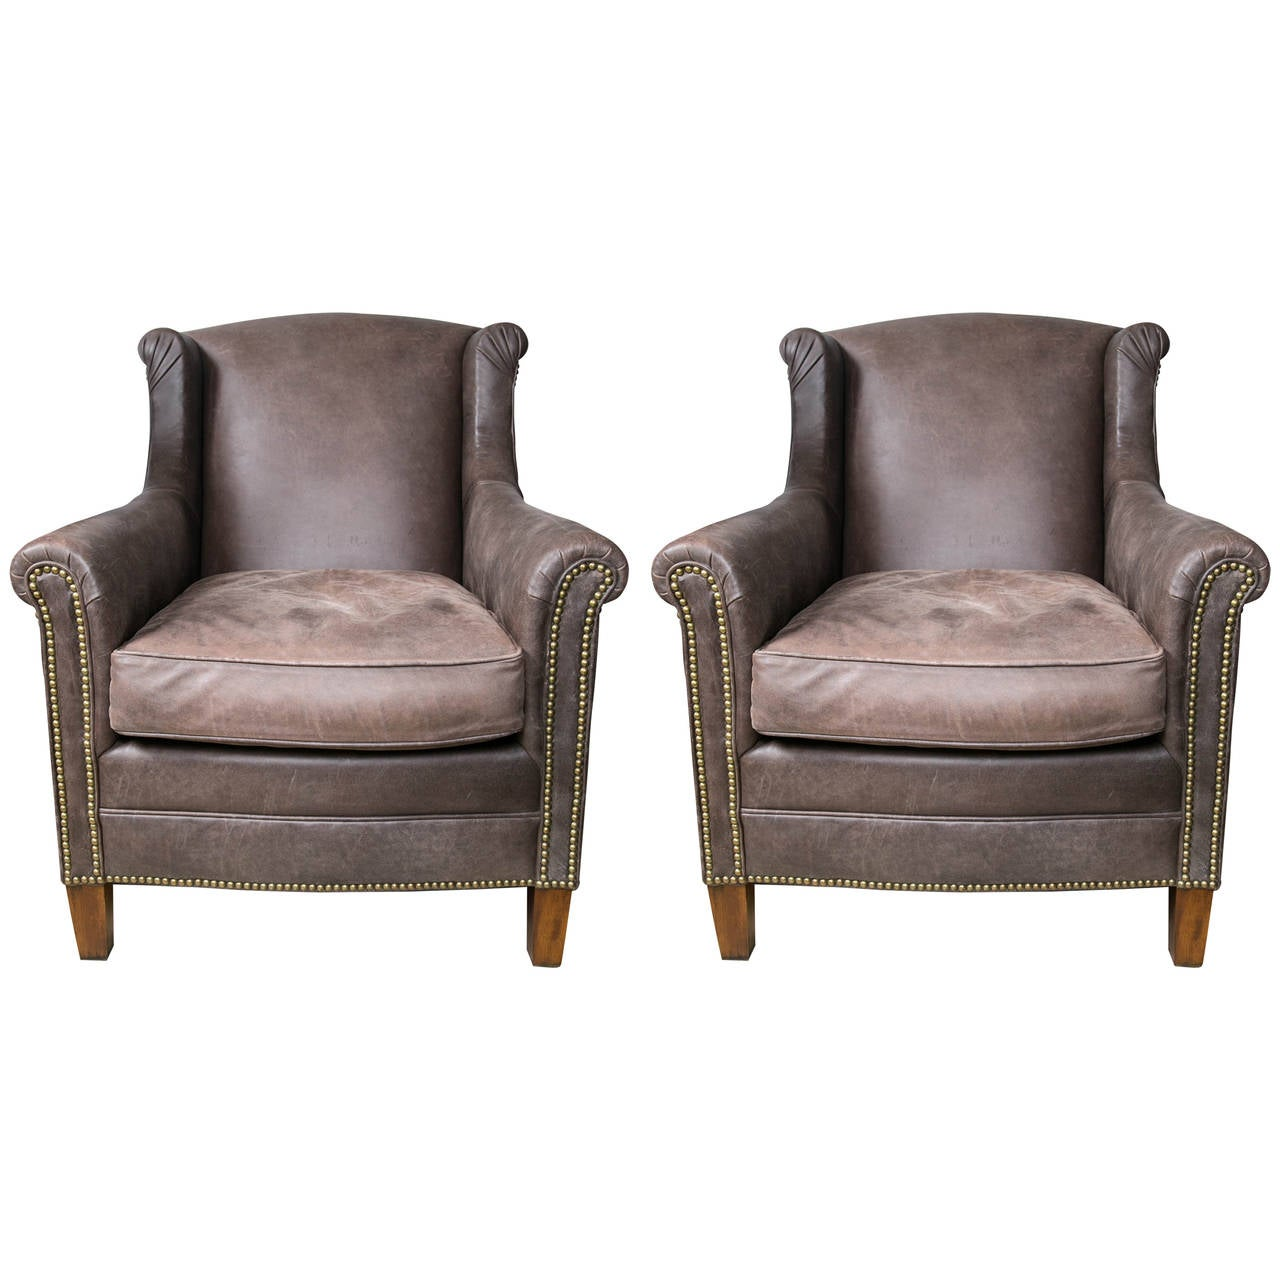 Pair of Ralph Lauren Leather Club Chairs at 1stdibs